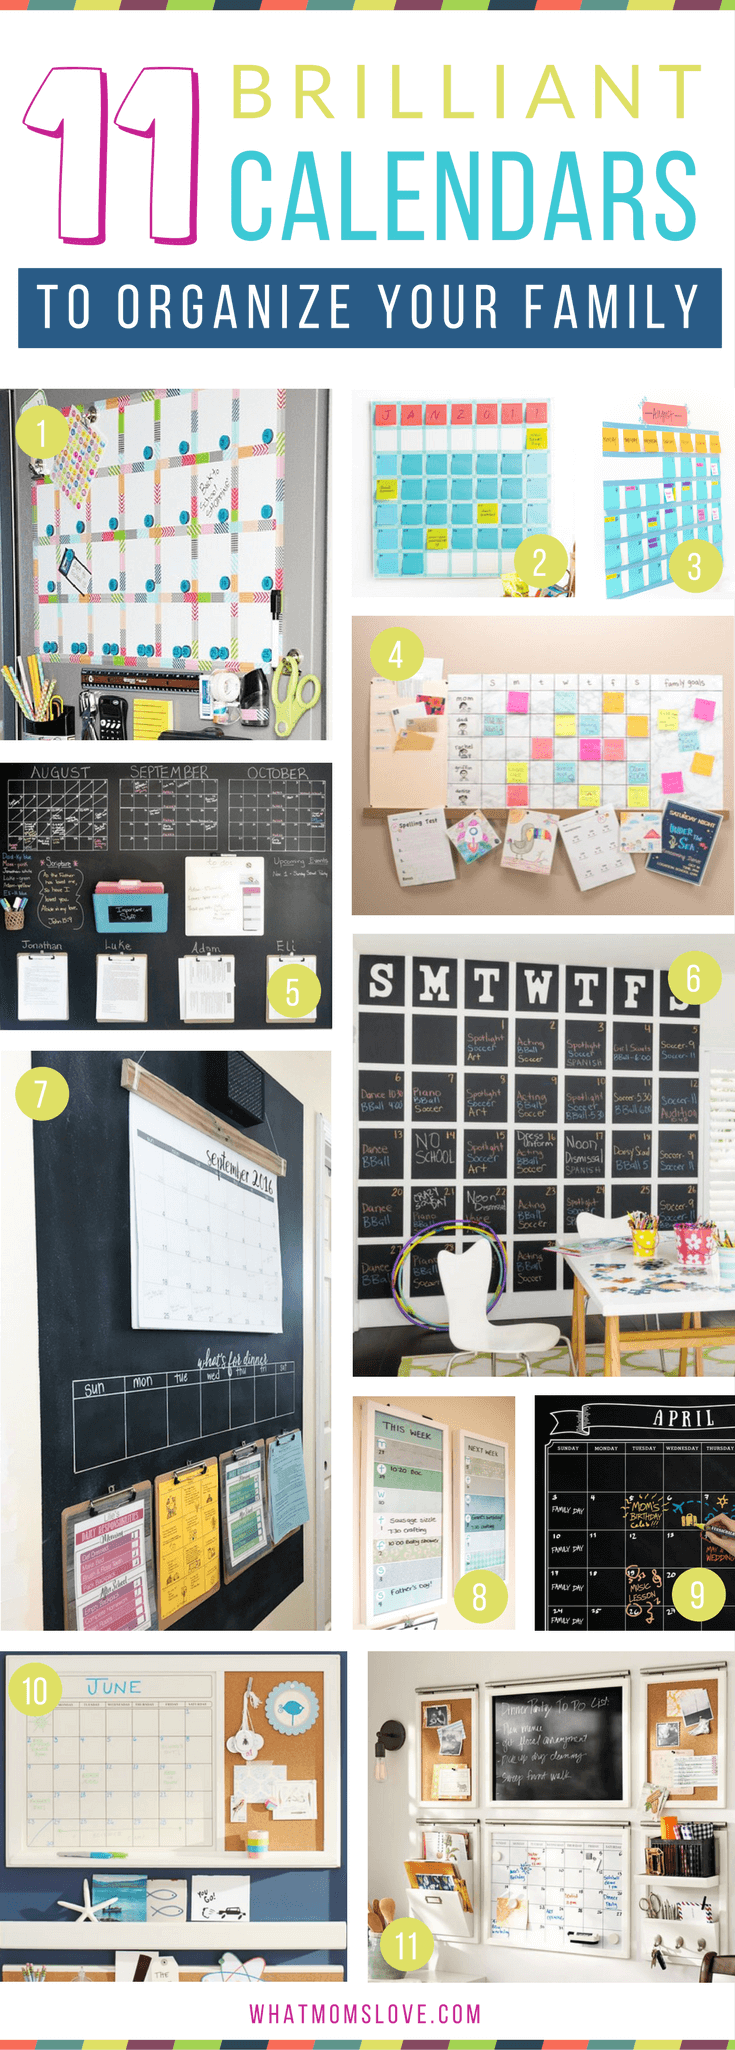 How to create a family wall calendar to organize your life   DIY Calendars and Command Center ideas, plus more tips, hacks and tricks to survive summer with your kids